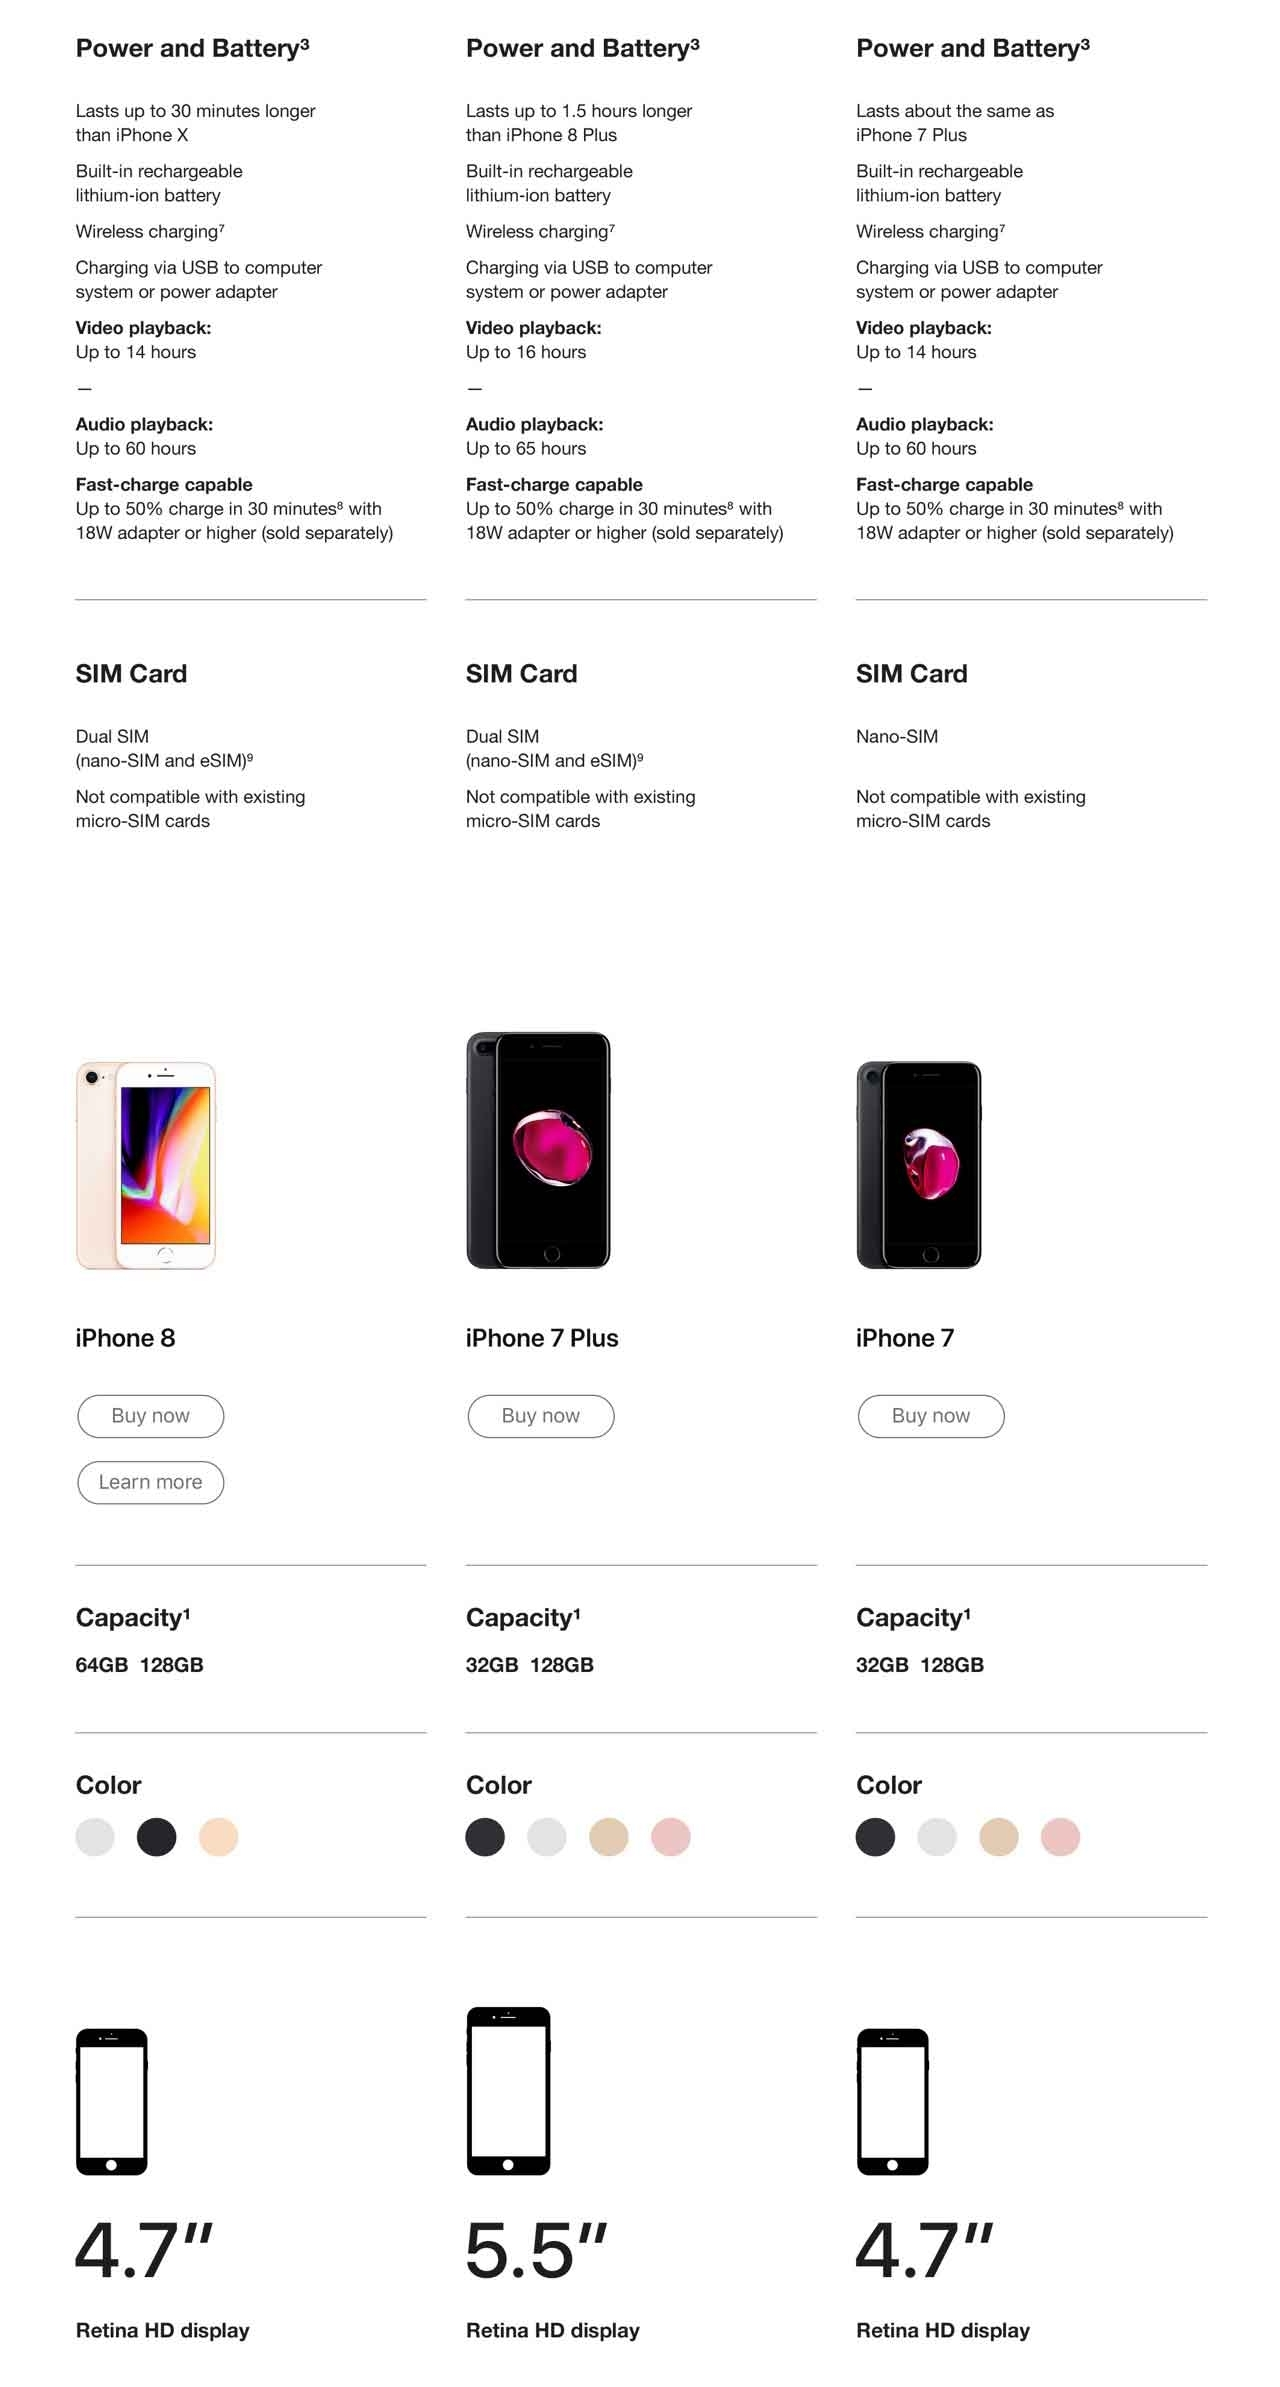 Apple iPhone Compare chart for the iPhone 11 Pro, iPhone 11, iPhone Xs, iPhone Xr, 8 Plus, 8, 7 Plus, and 7